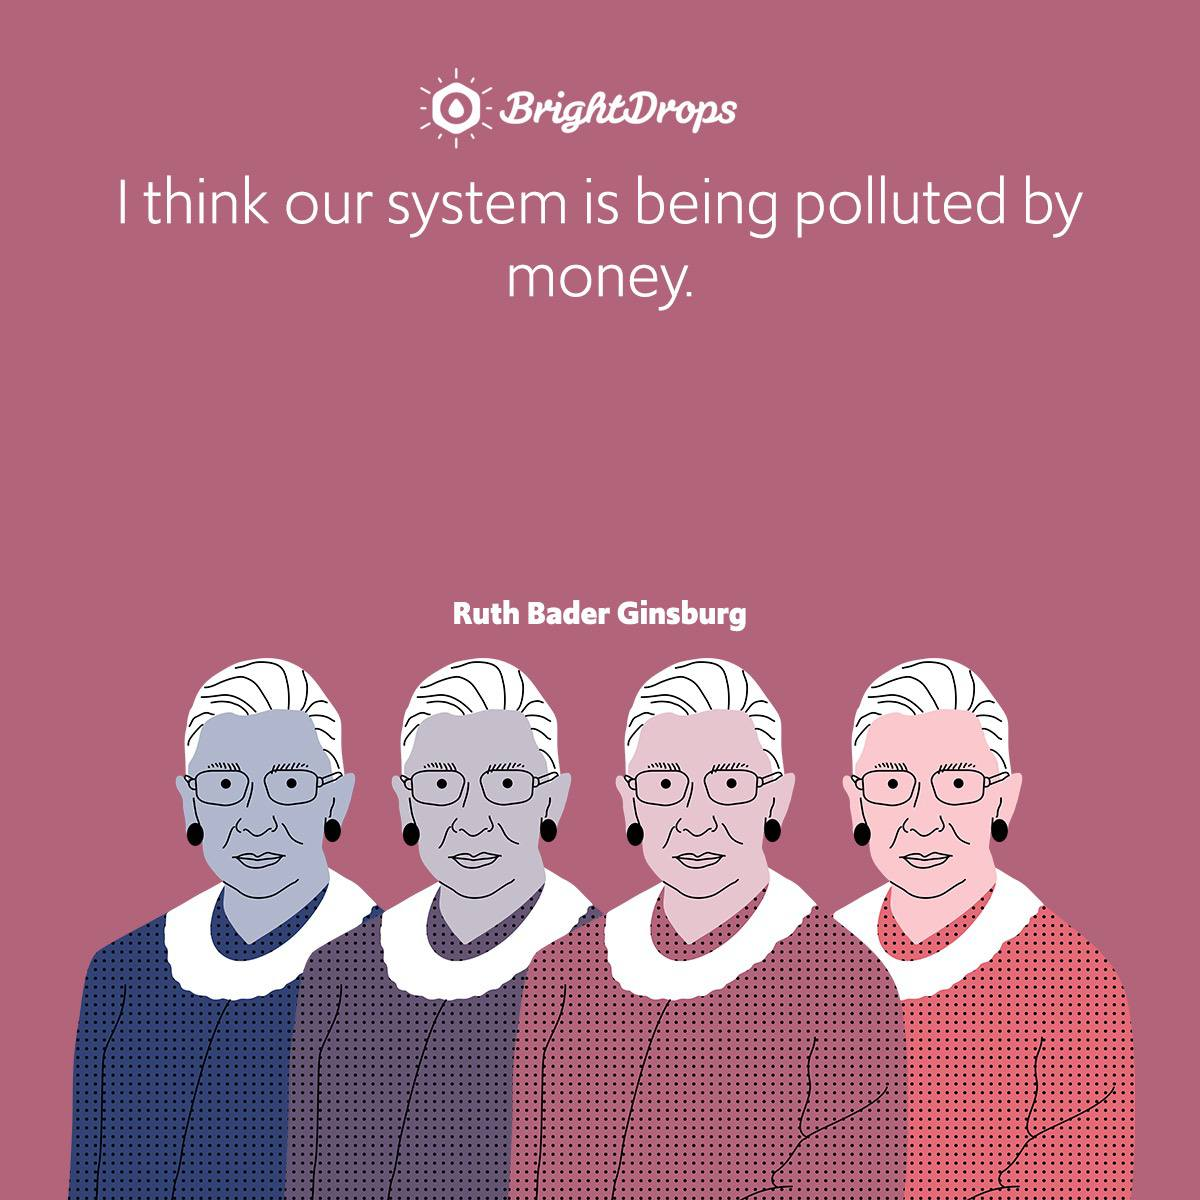 I think our system is being polluted by money.